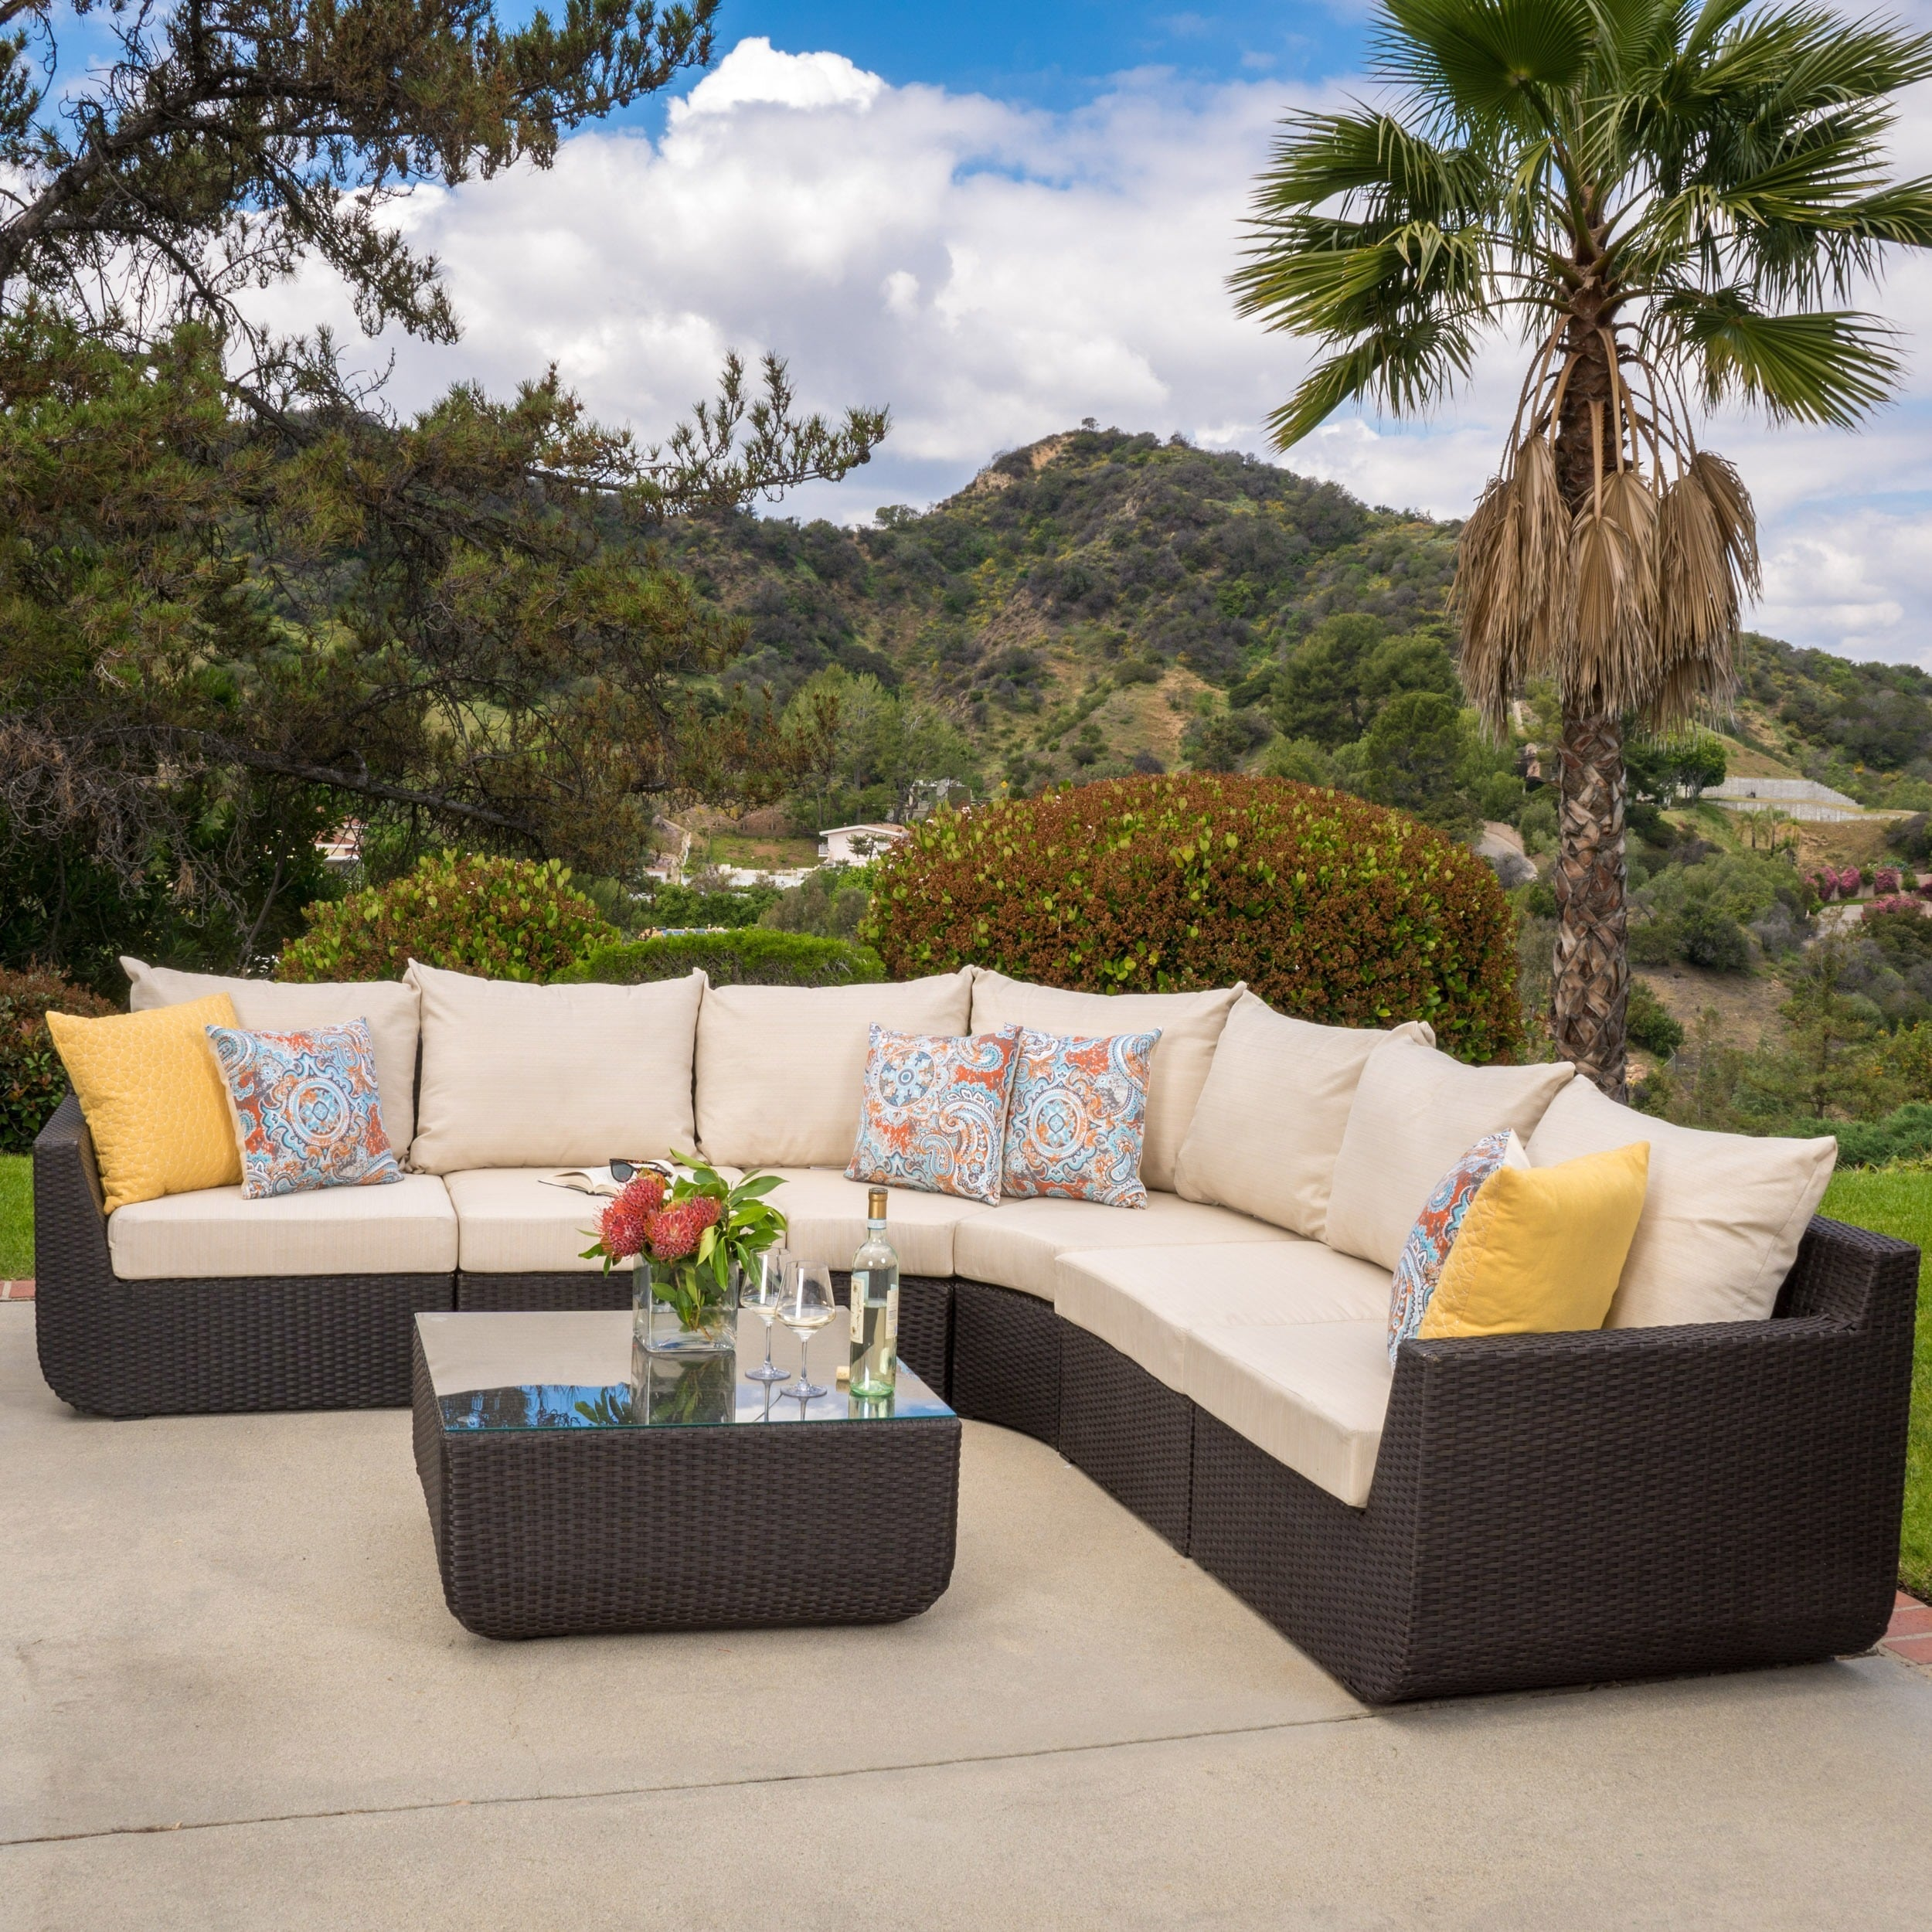 Shop Carmel Outdoor 7-piece Outdoor Sectional Sofa Set with Cushions ...